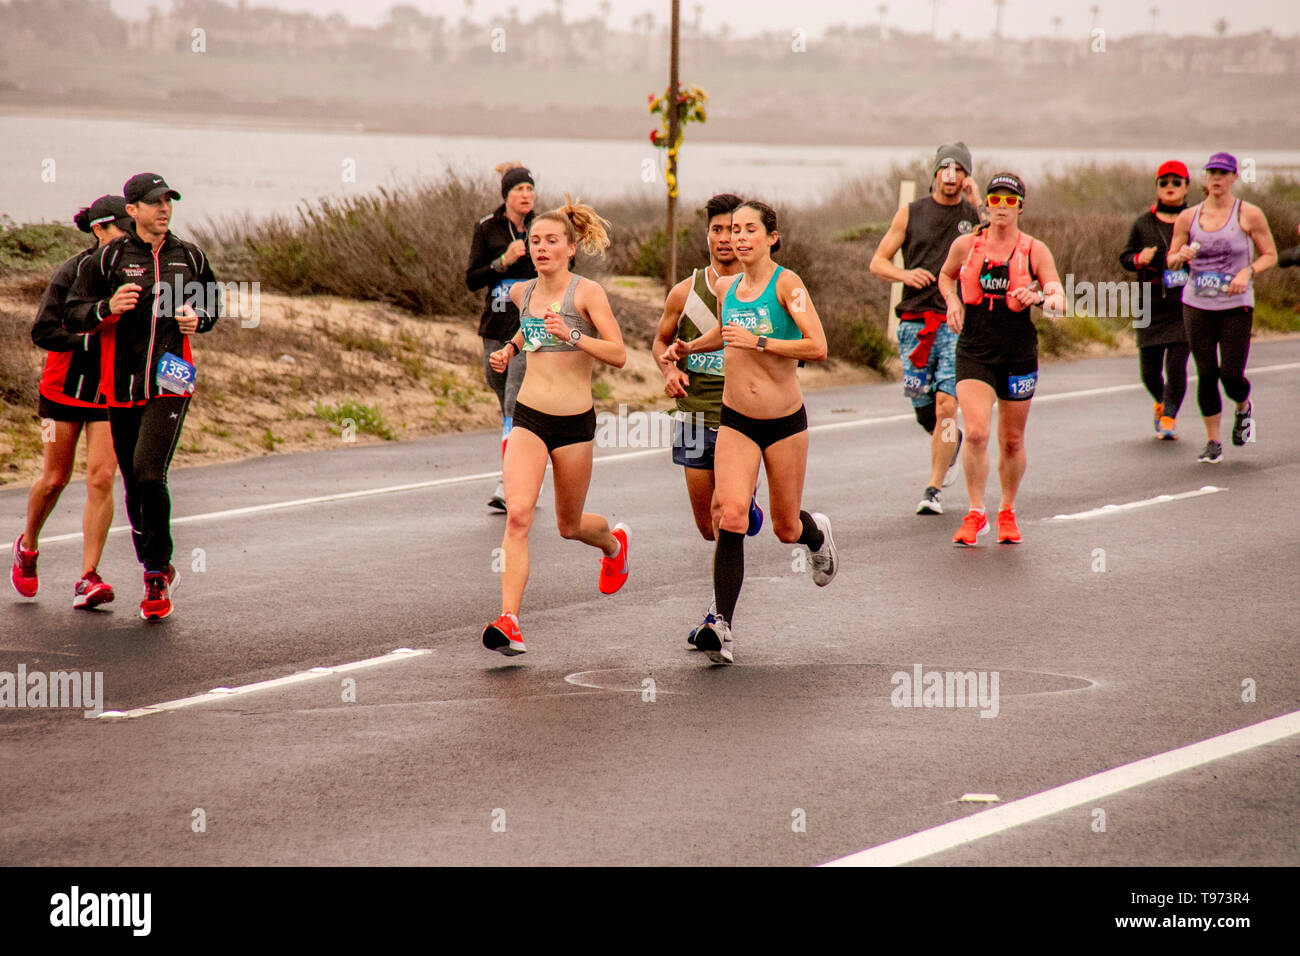 As volunteers stand by to offer assistance, female half marathon contestants run along a road in Huntington Beach, CA. - Stock Image